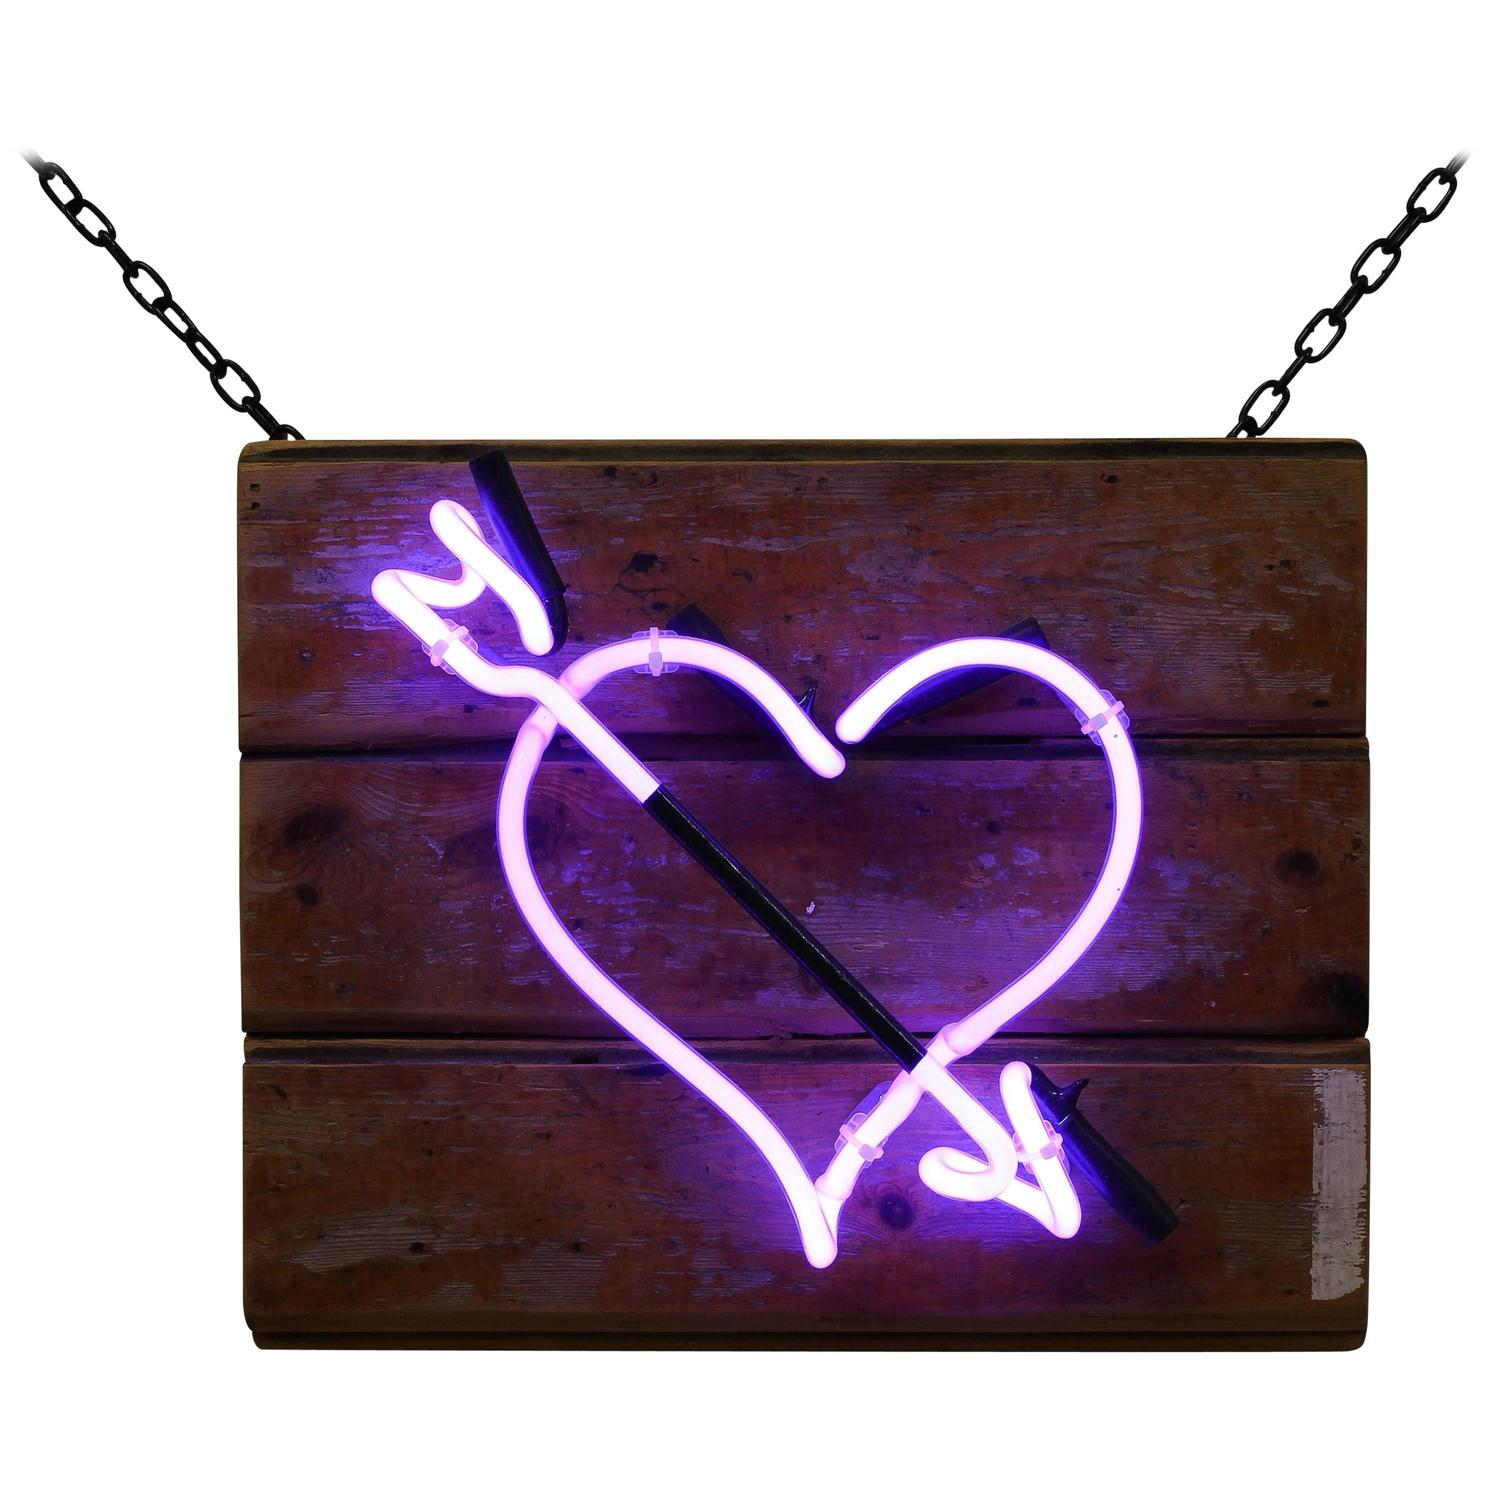 Purple Heart With Arrow On Salvaged Wood For Sale At 1stdibs